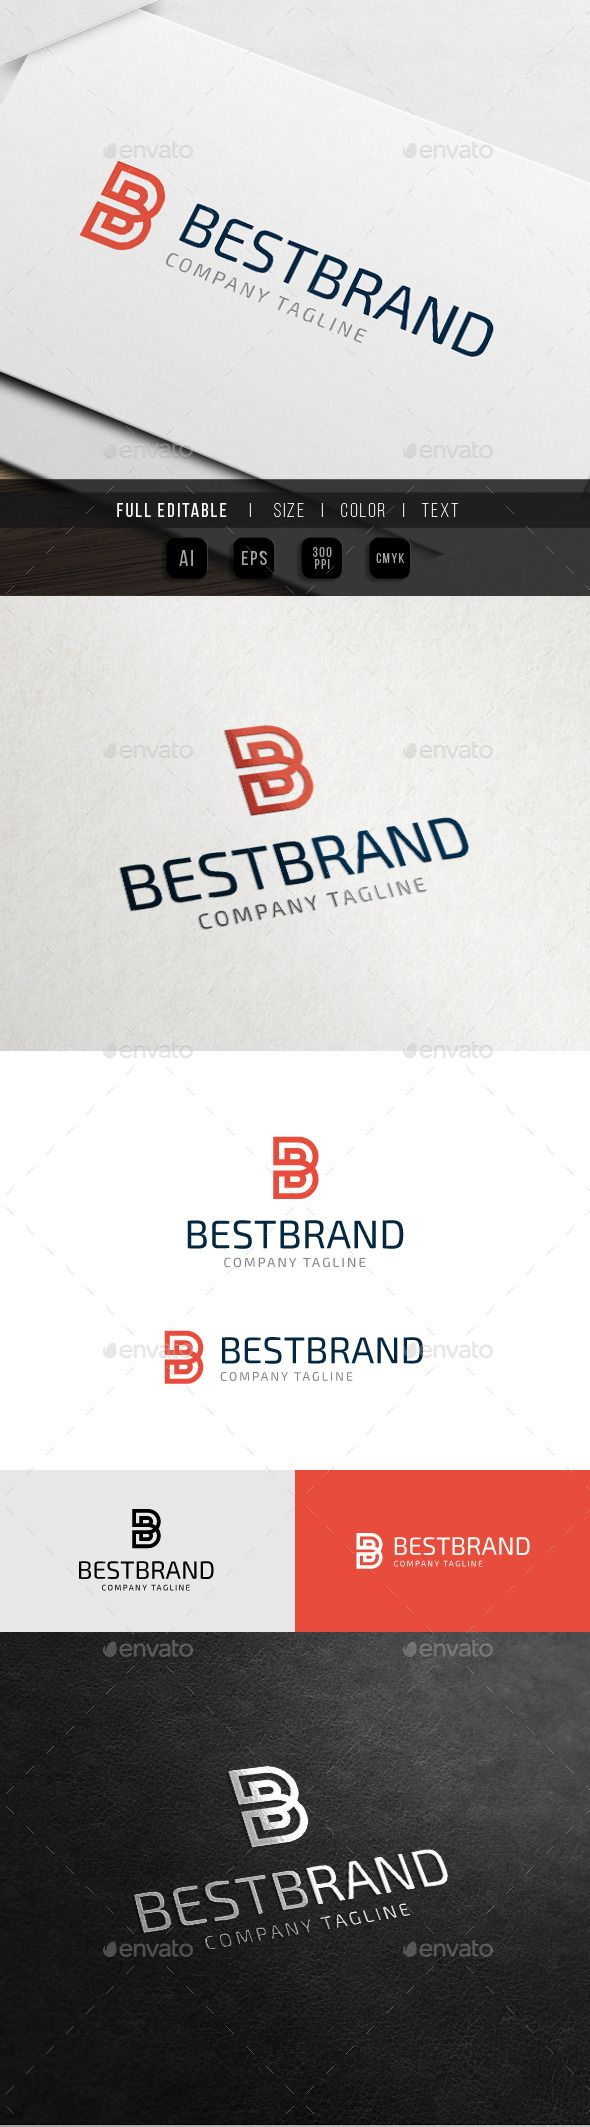 formats of business letters%0A Best Brand  Letter B Business